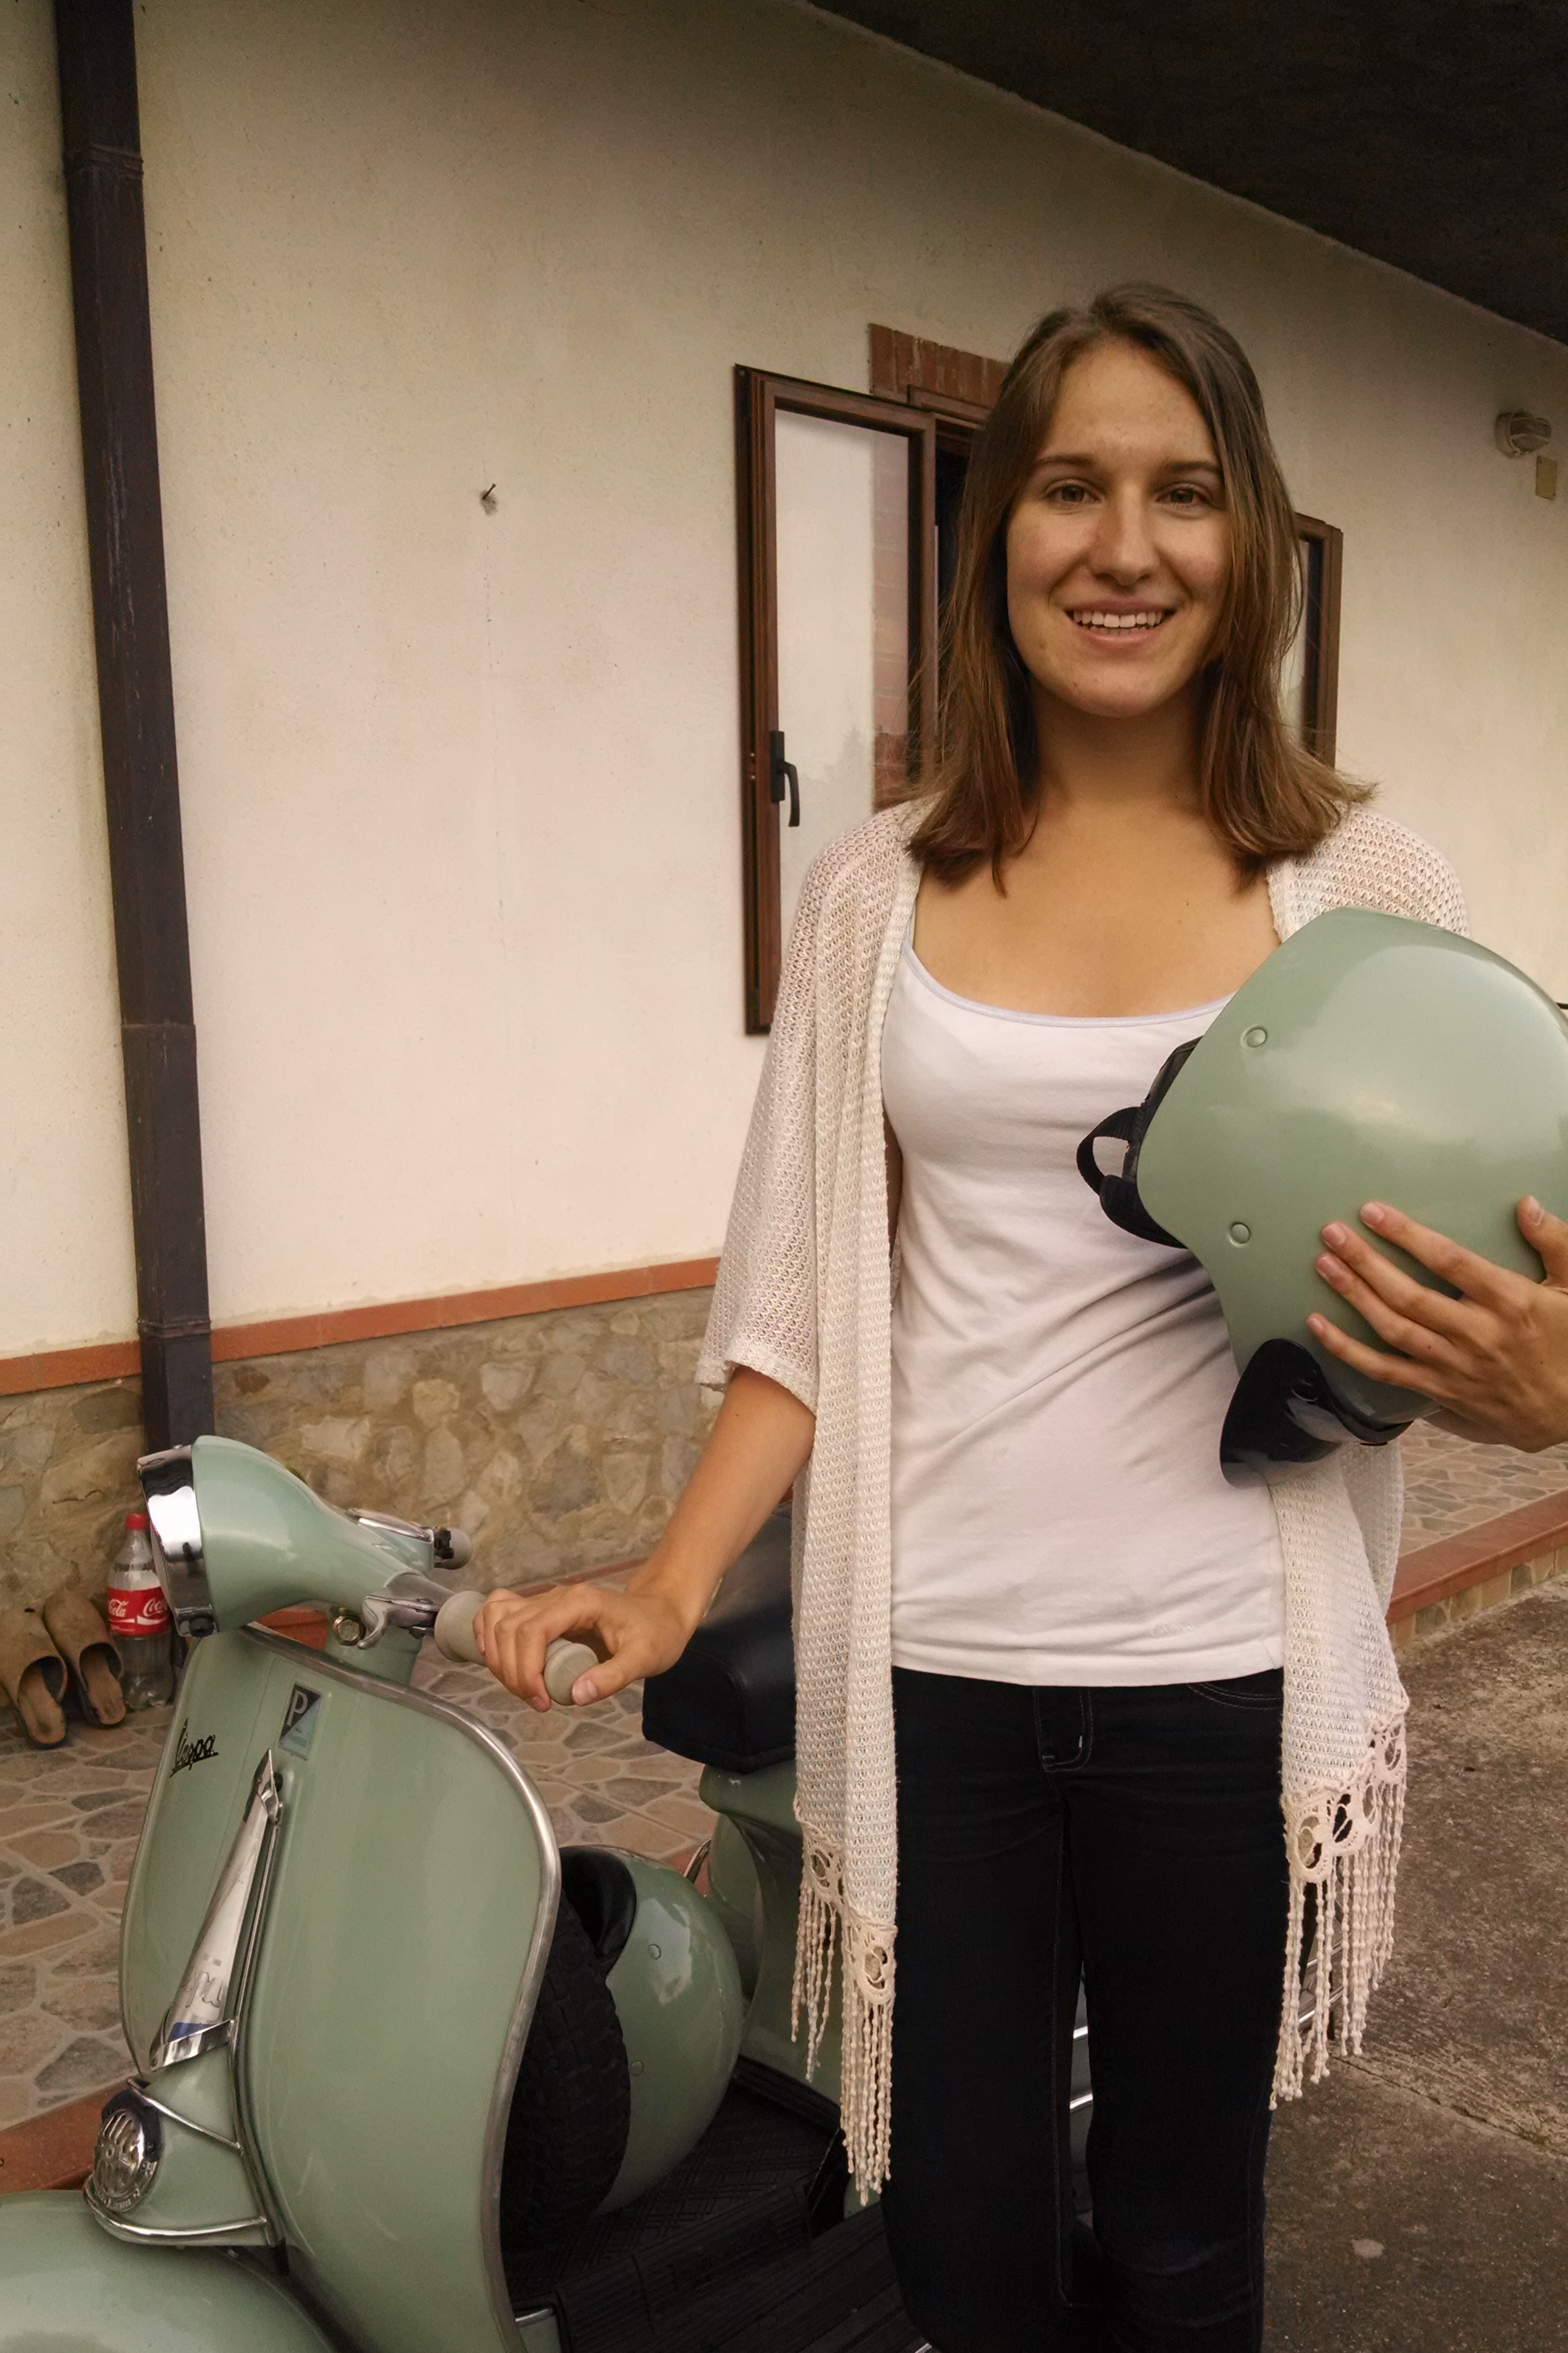 My Italian dreams came true when my host family let me ride their friend's Vespa